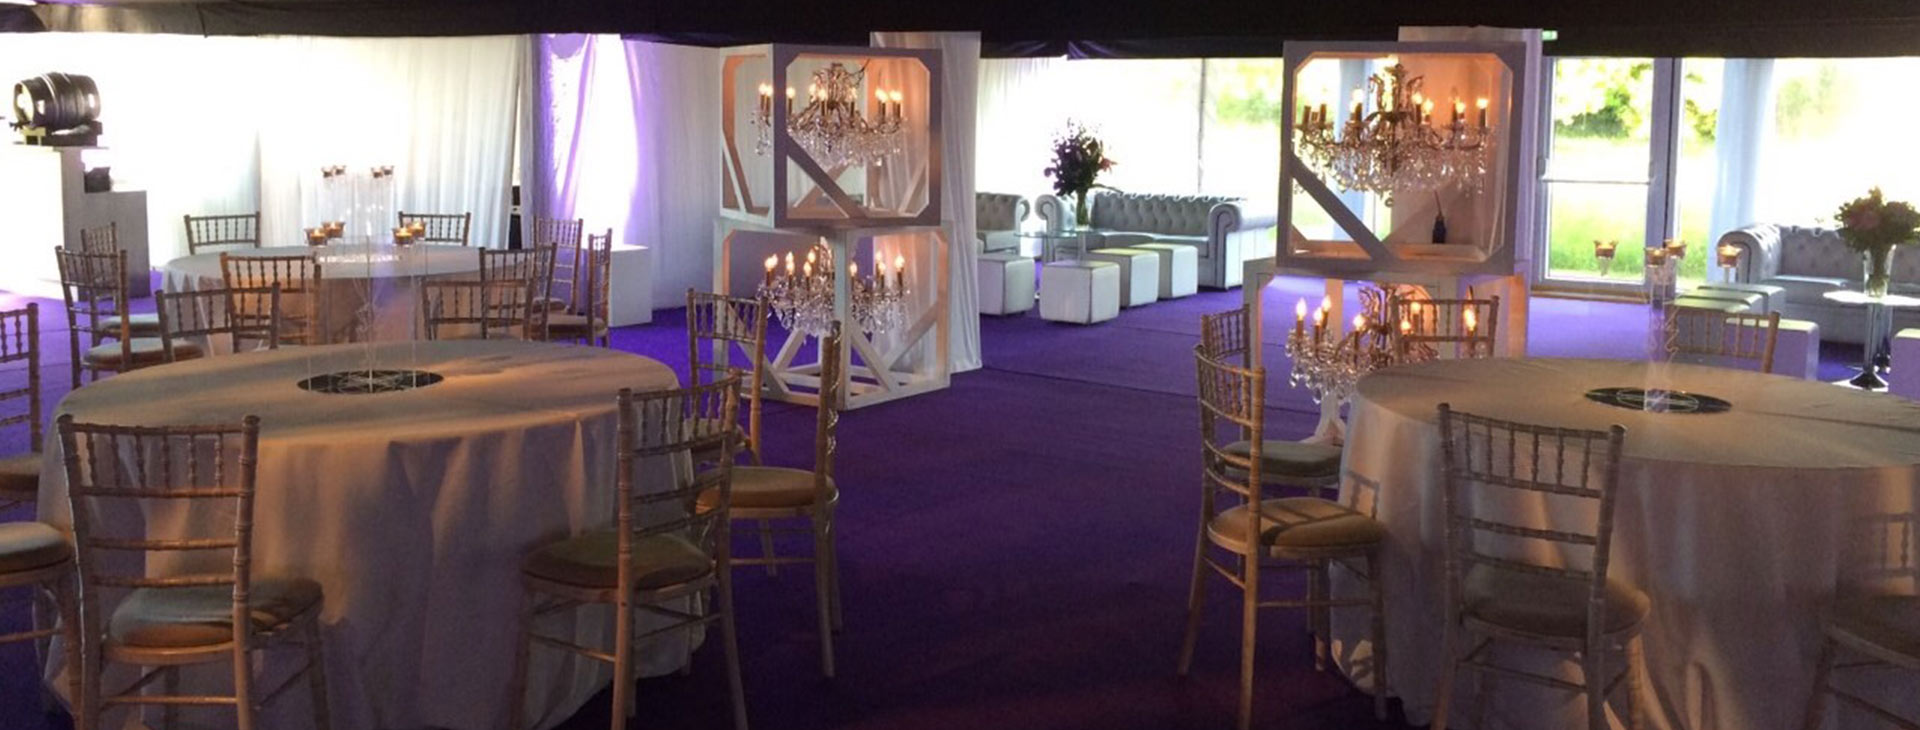 pop up nightclub in a marquee